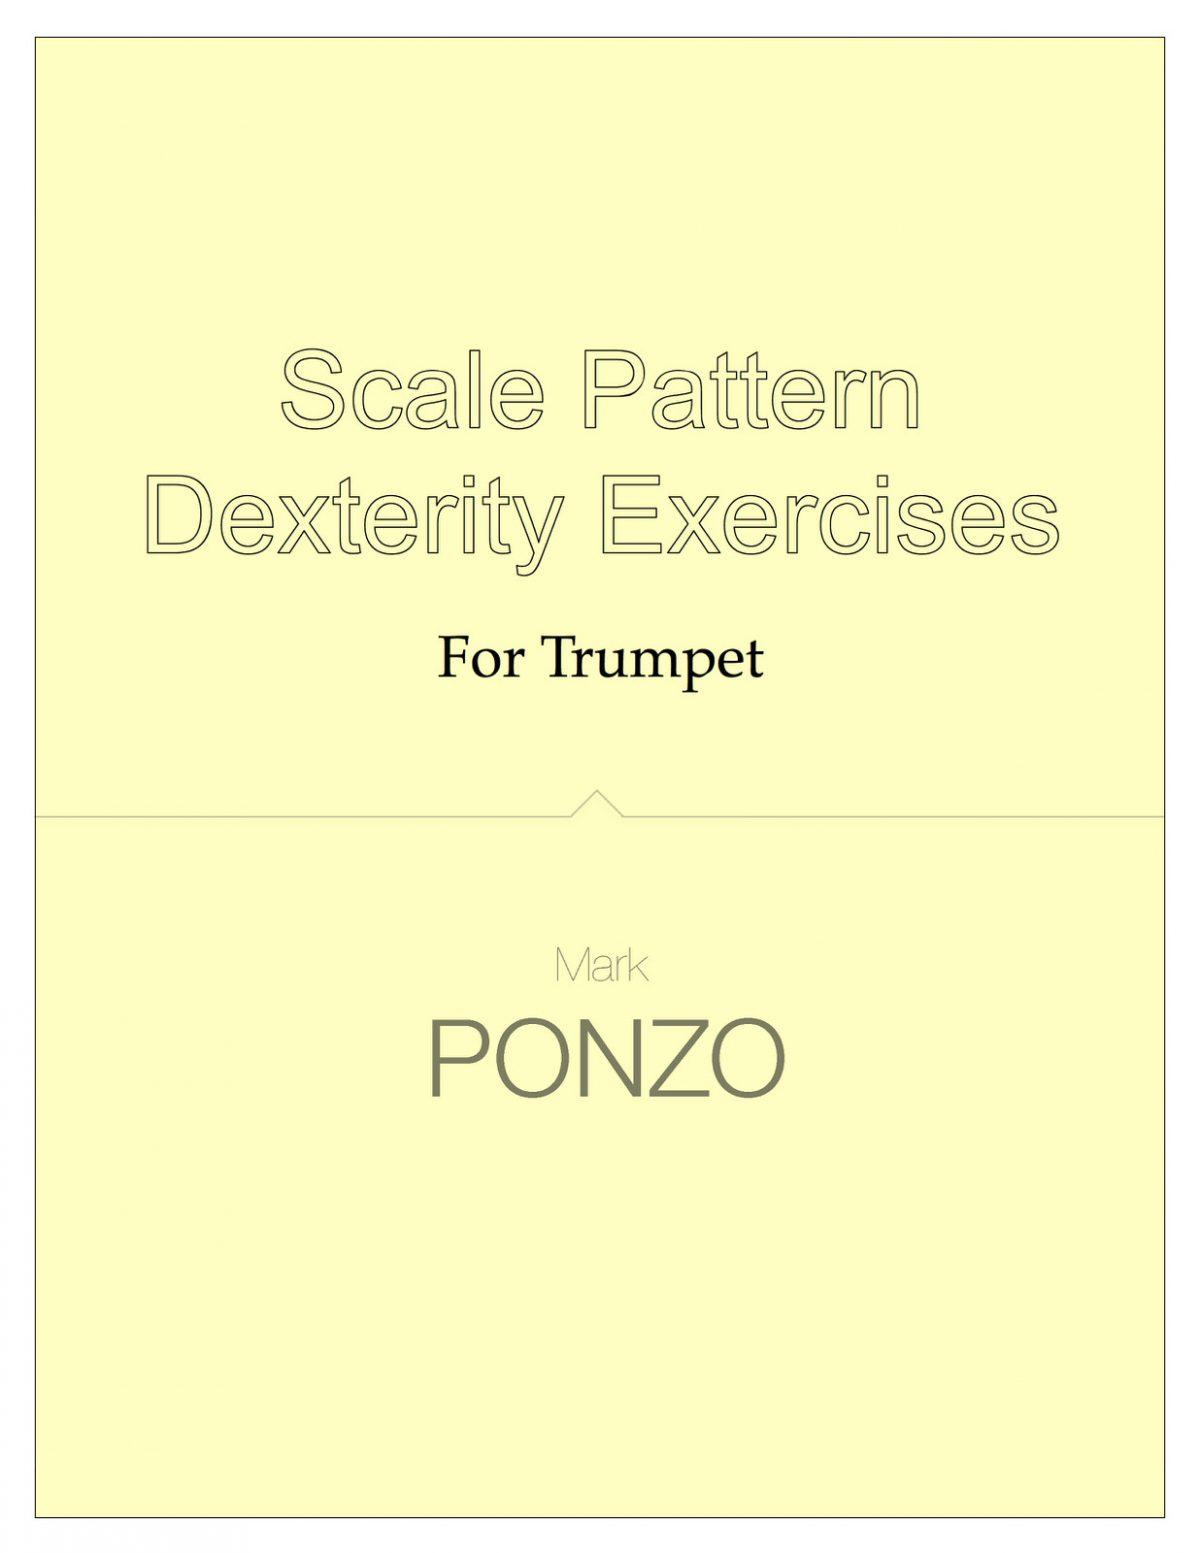 Ponzo, Scale Pattern Dexterity Exercises for Trumpet